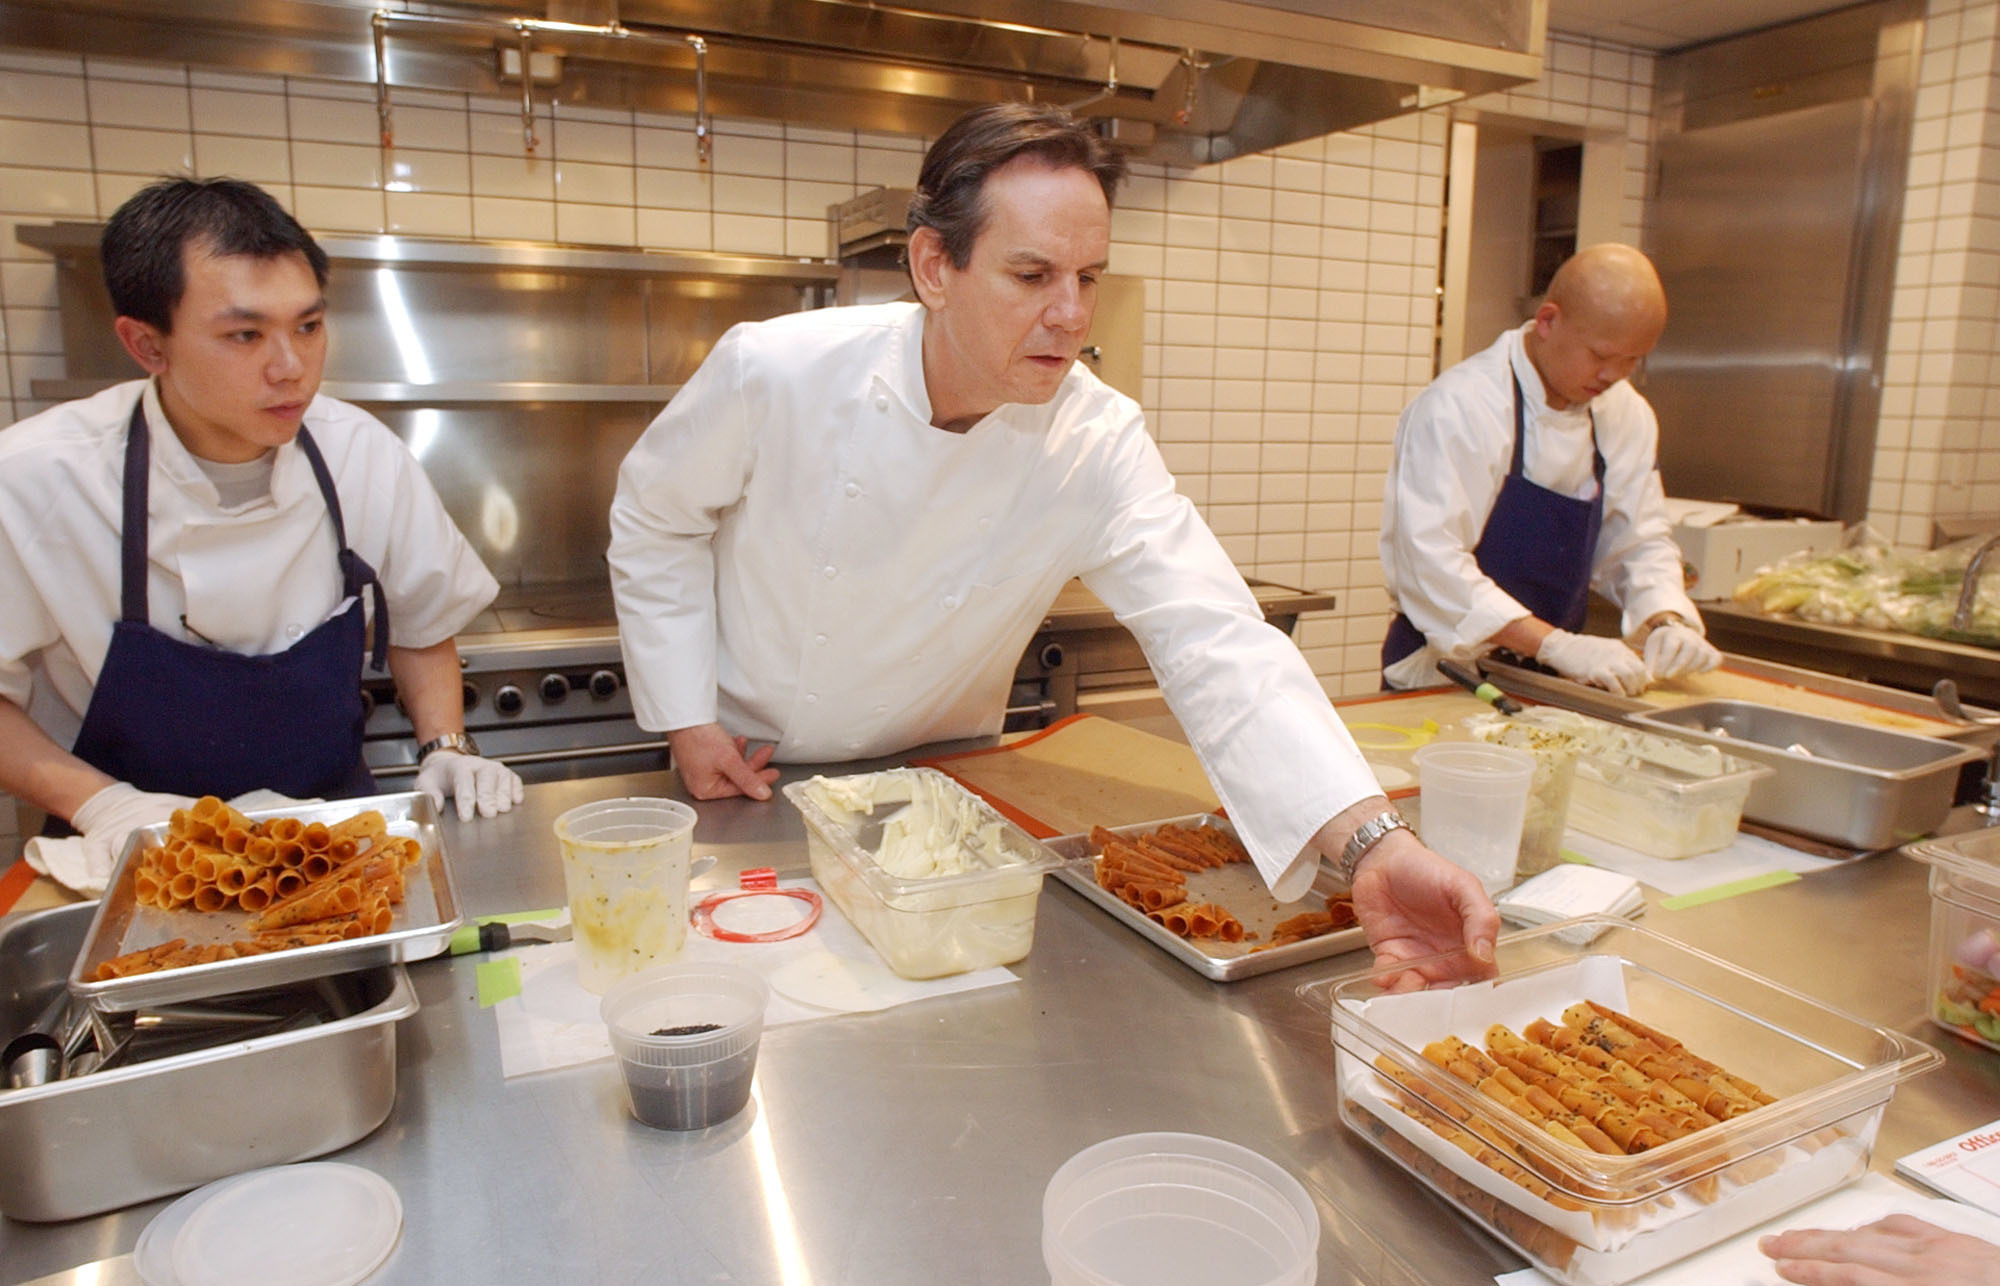 Chef Thomas Keller checks out preparations in the kitchen of his New York restaurant, Per Se, in the Time Warner Center, in February 2004. Photo: Richard Drew/AP